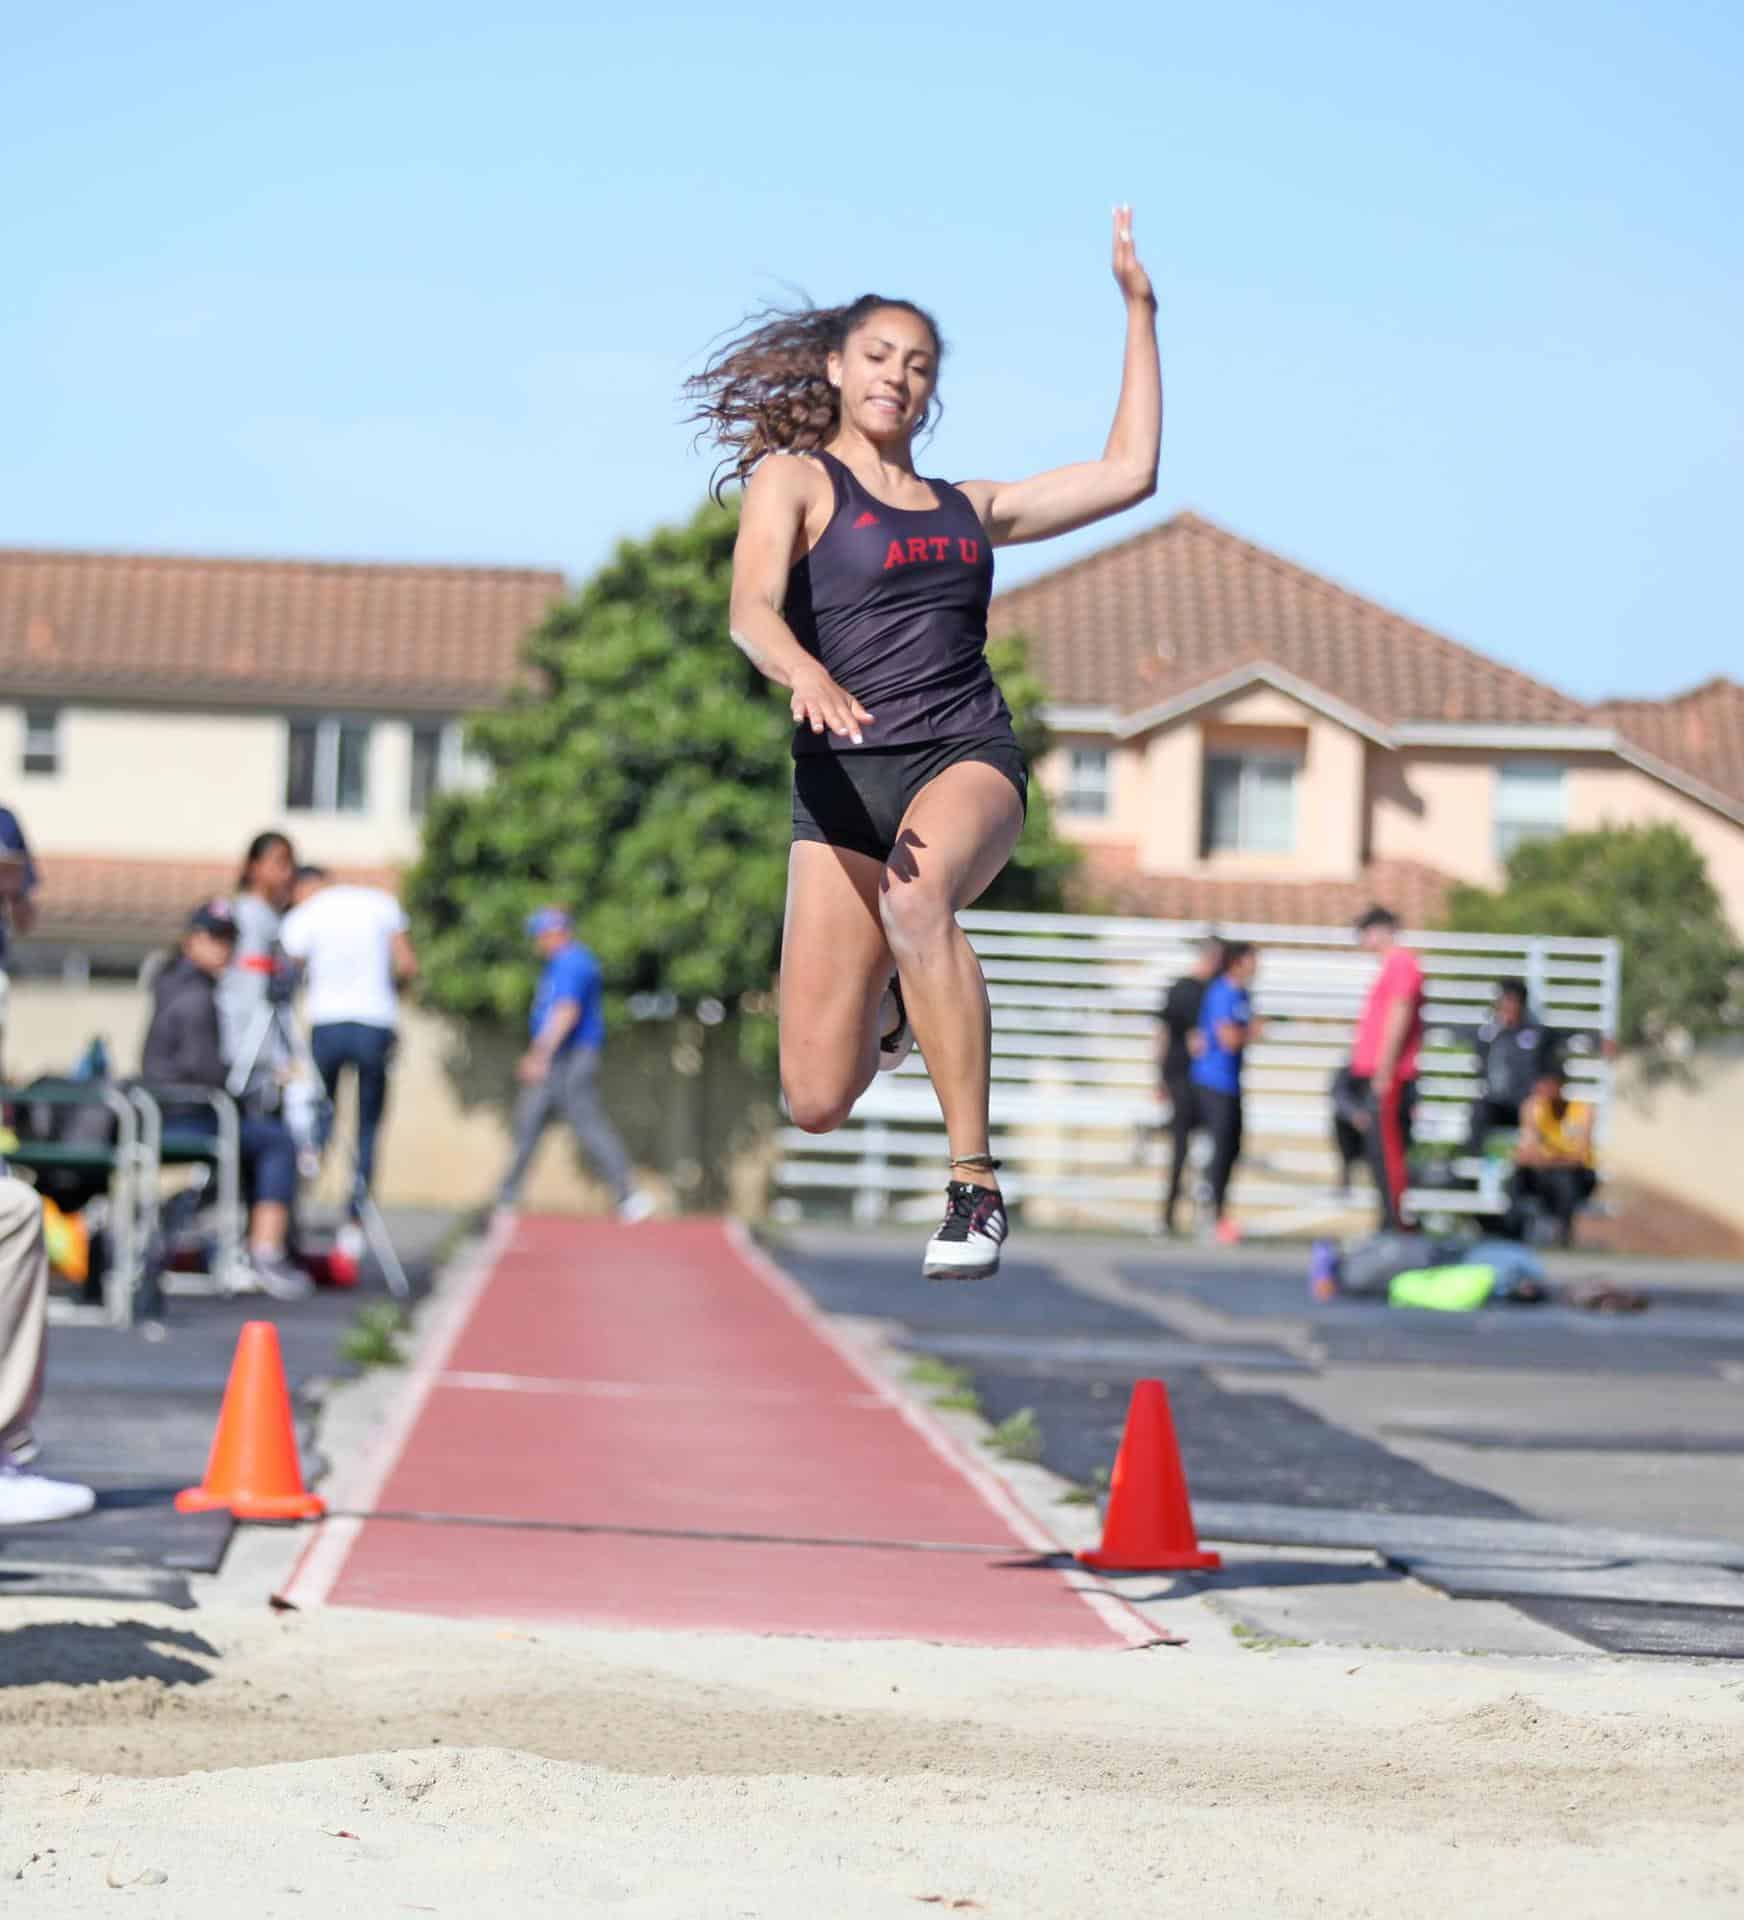 WT&F - Celena Davison (photo by Rob Garcia)